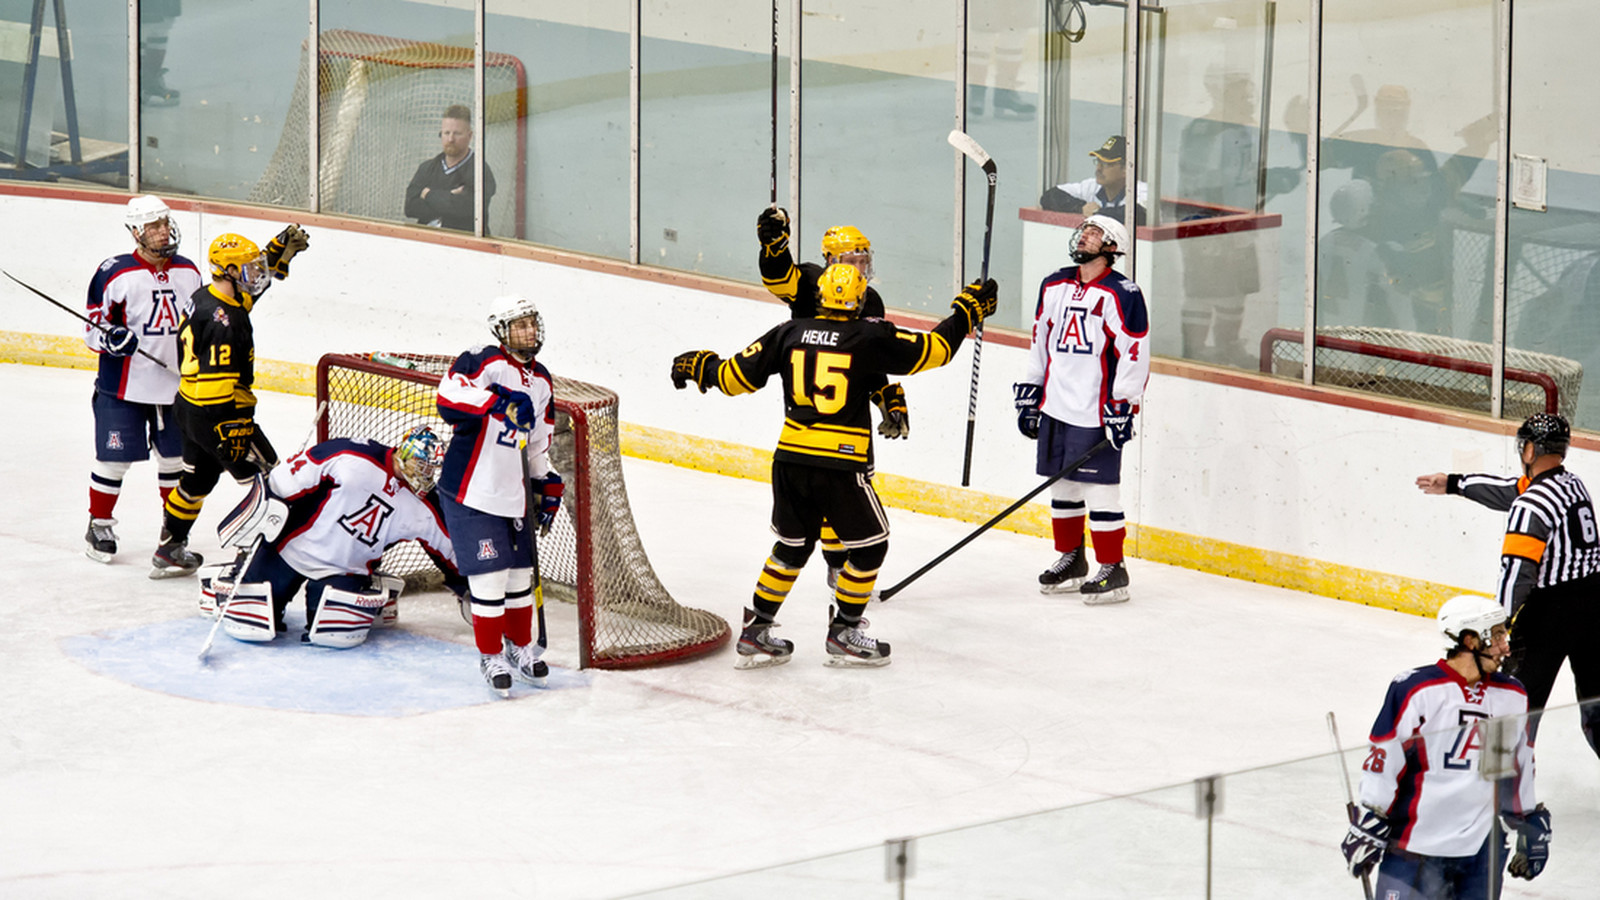 ASU Hockey: 28 Reasons to Come Watch the Sun Devils vs. the Arizona Wildcats This Weekend ...